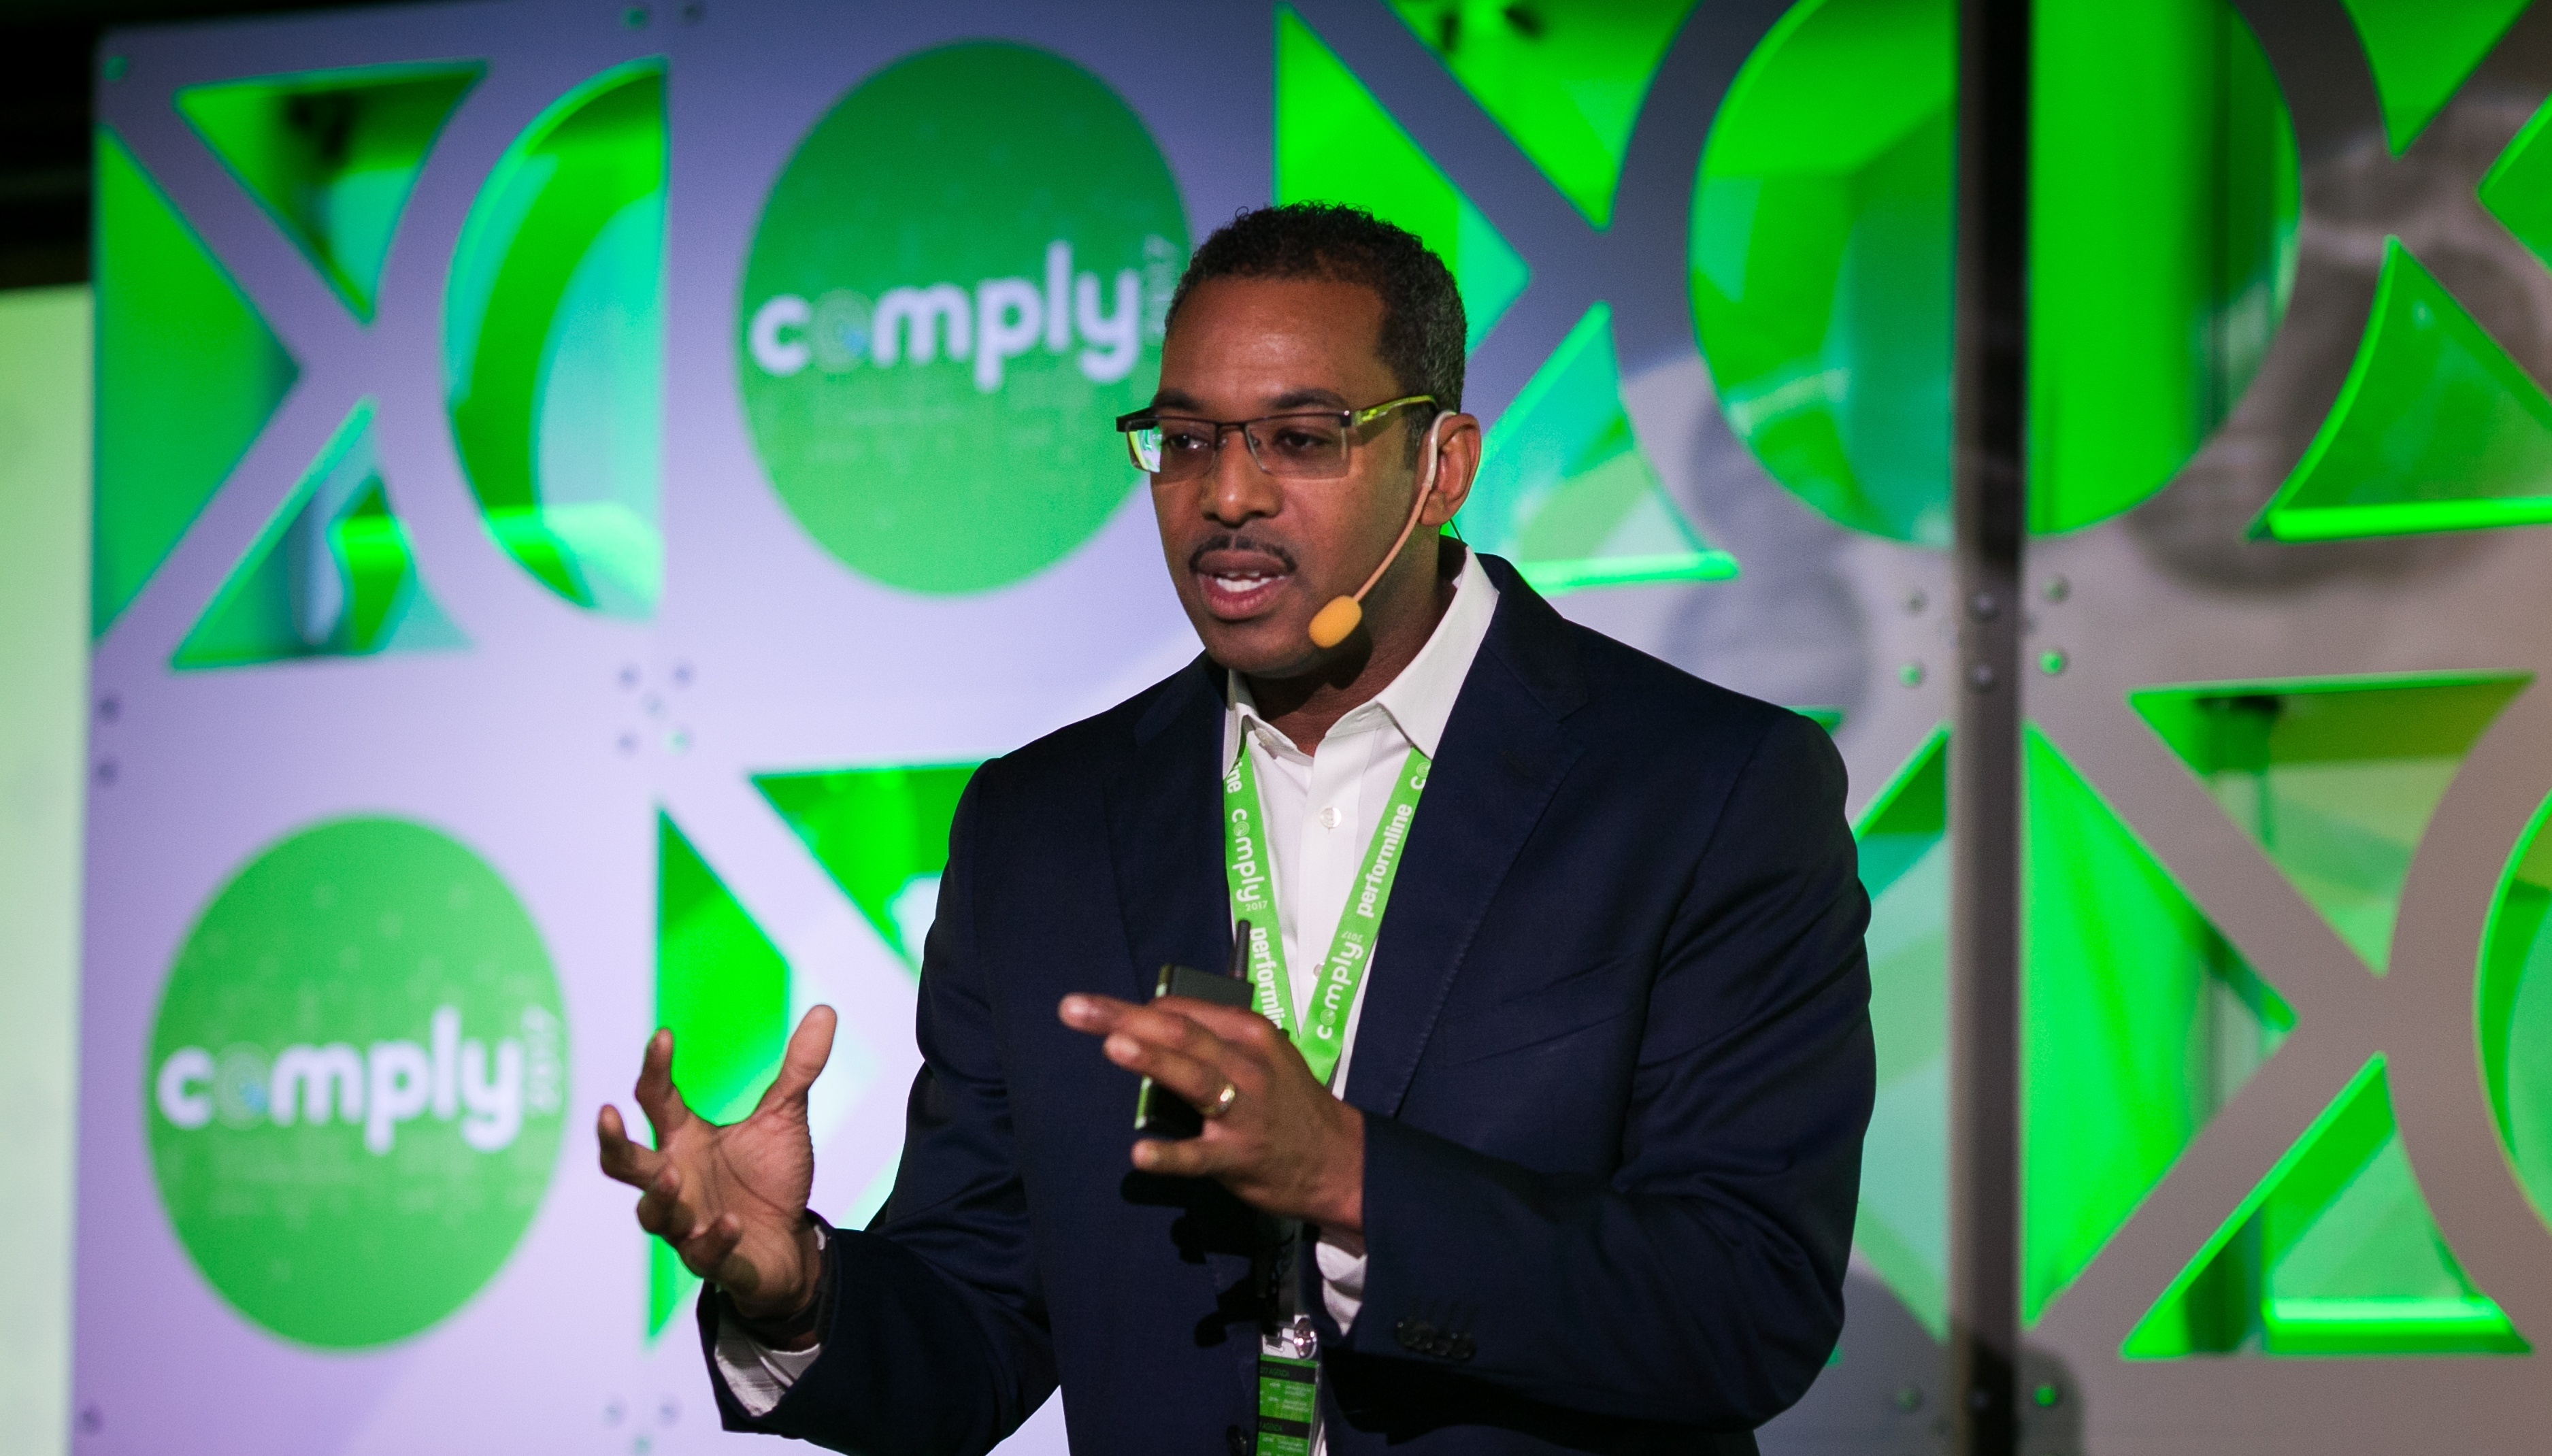 [COMPLY2017 Recap] Making a Culture of Compliance Contagious